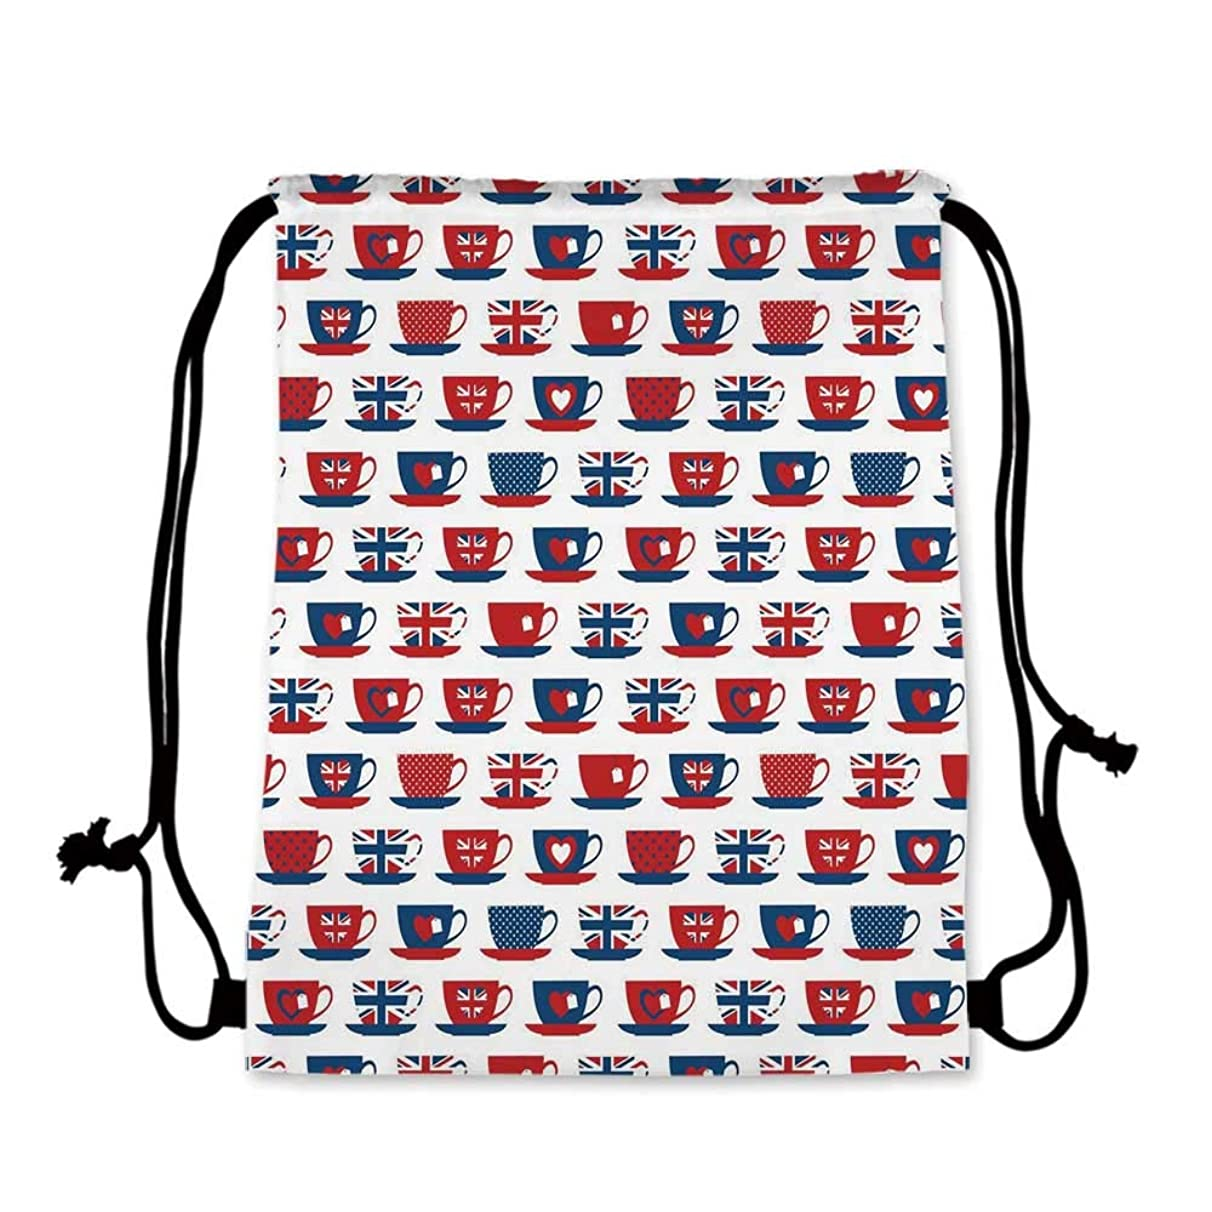 Tea Party Practical Drawstring Bag,Great Britain Themed Teacup Forms Patterned Union Jack Hearts Flags Decorative for Women,17.7''L x 36''W